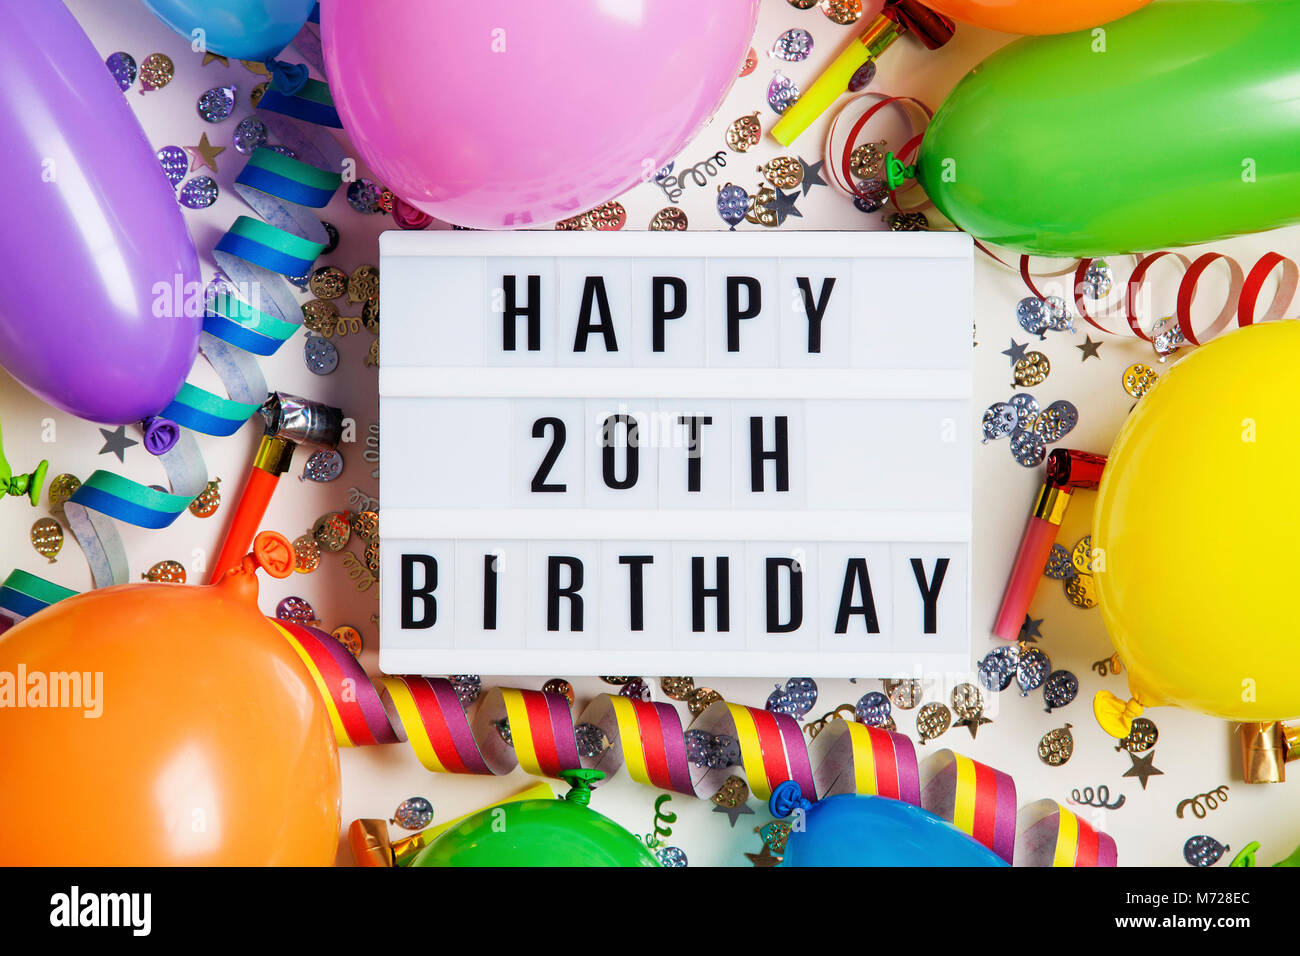 Happy 20th birthday celebration message on a lightbox with balloons and confetti - Stock Image